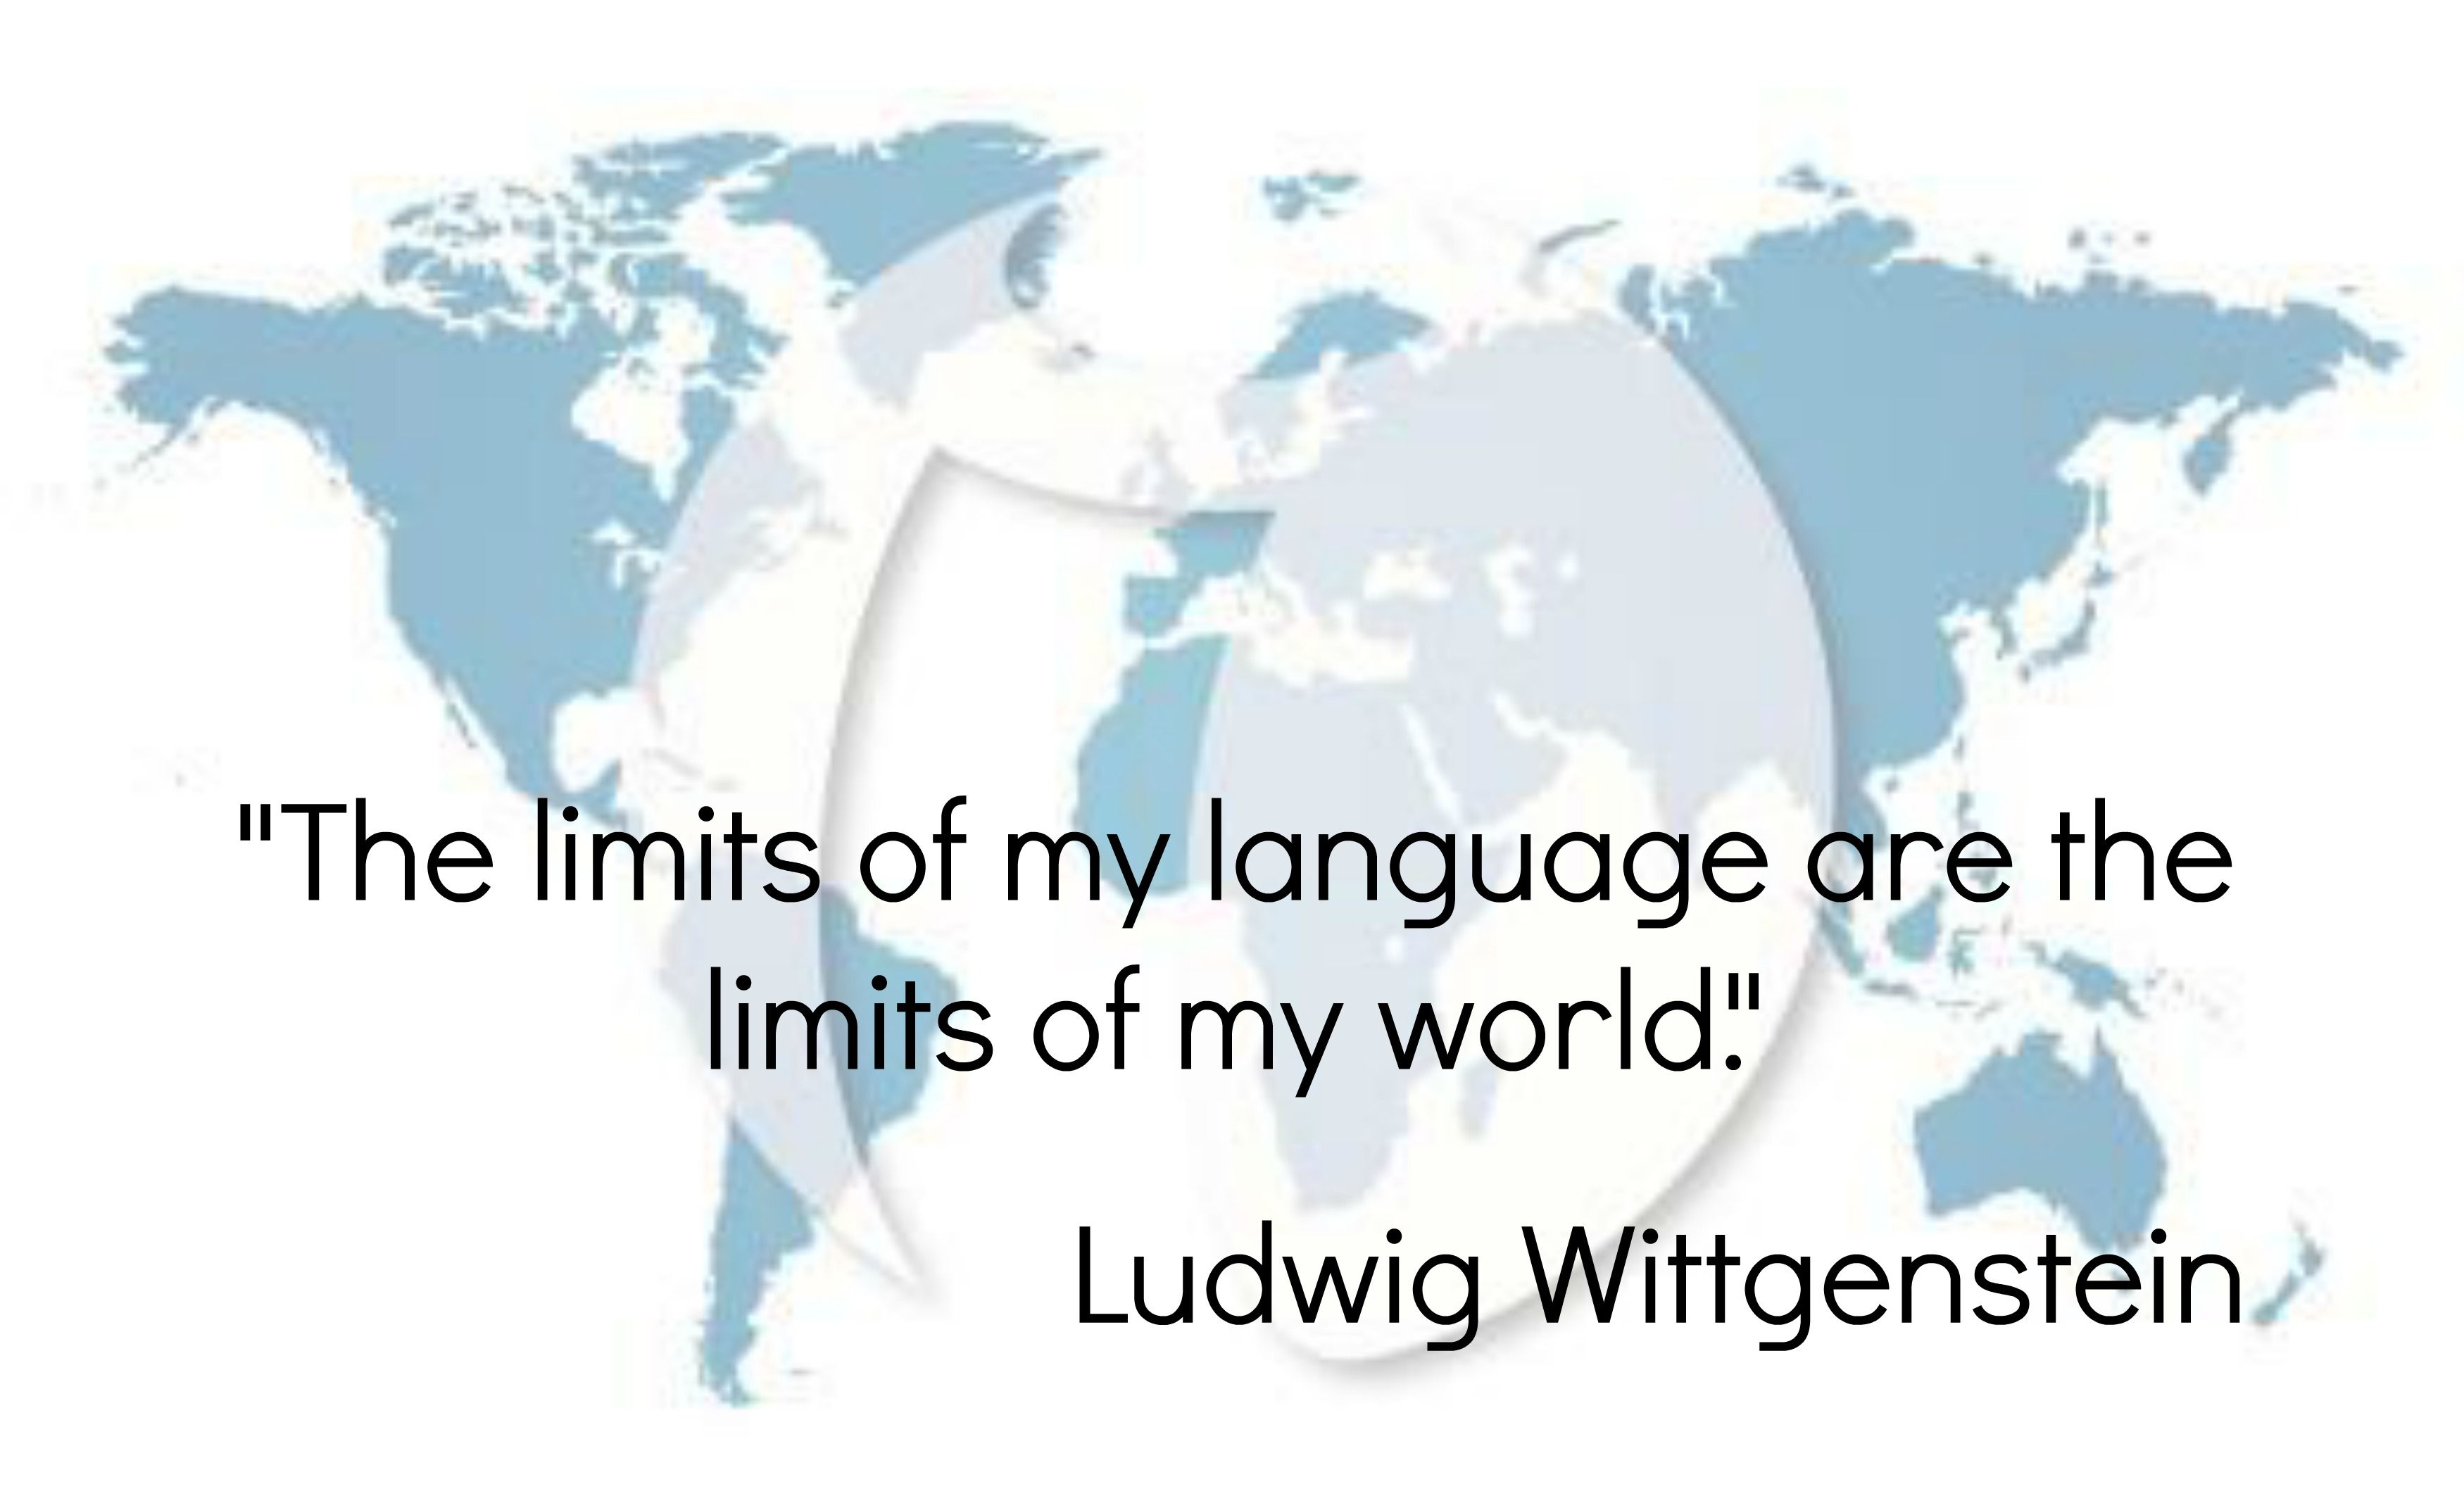 #frase #cita #quote #LudwigWittgenstein  The limits of my language are the limits of my world.